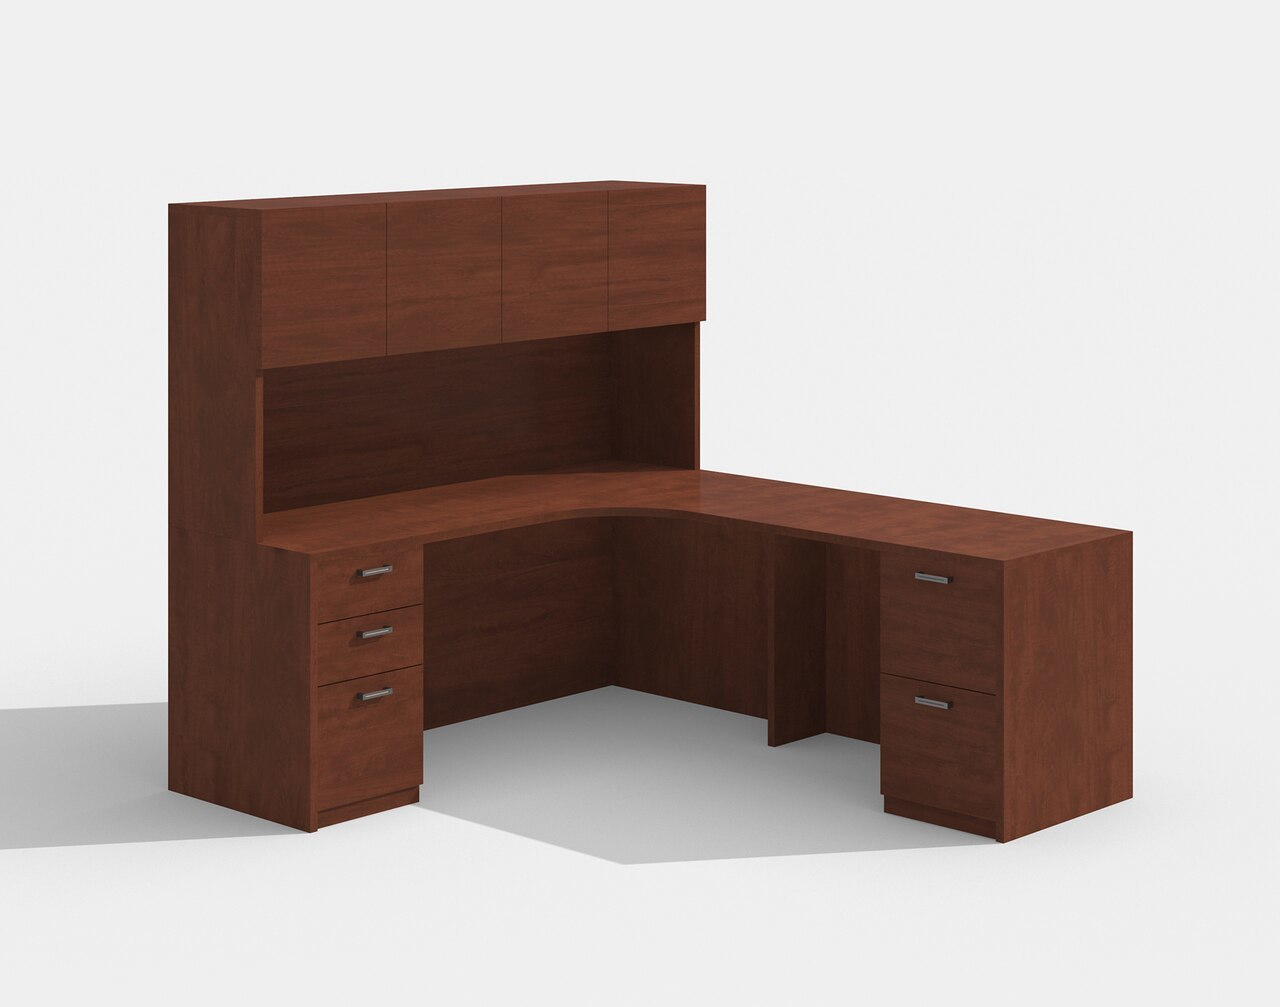 cherryman am-342 l desk with a426 hutch in cherry